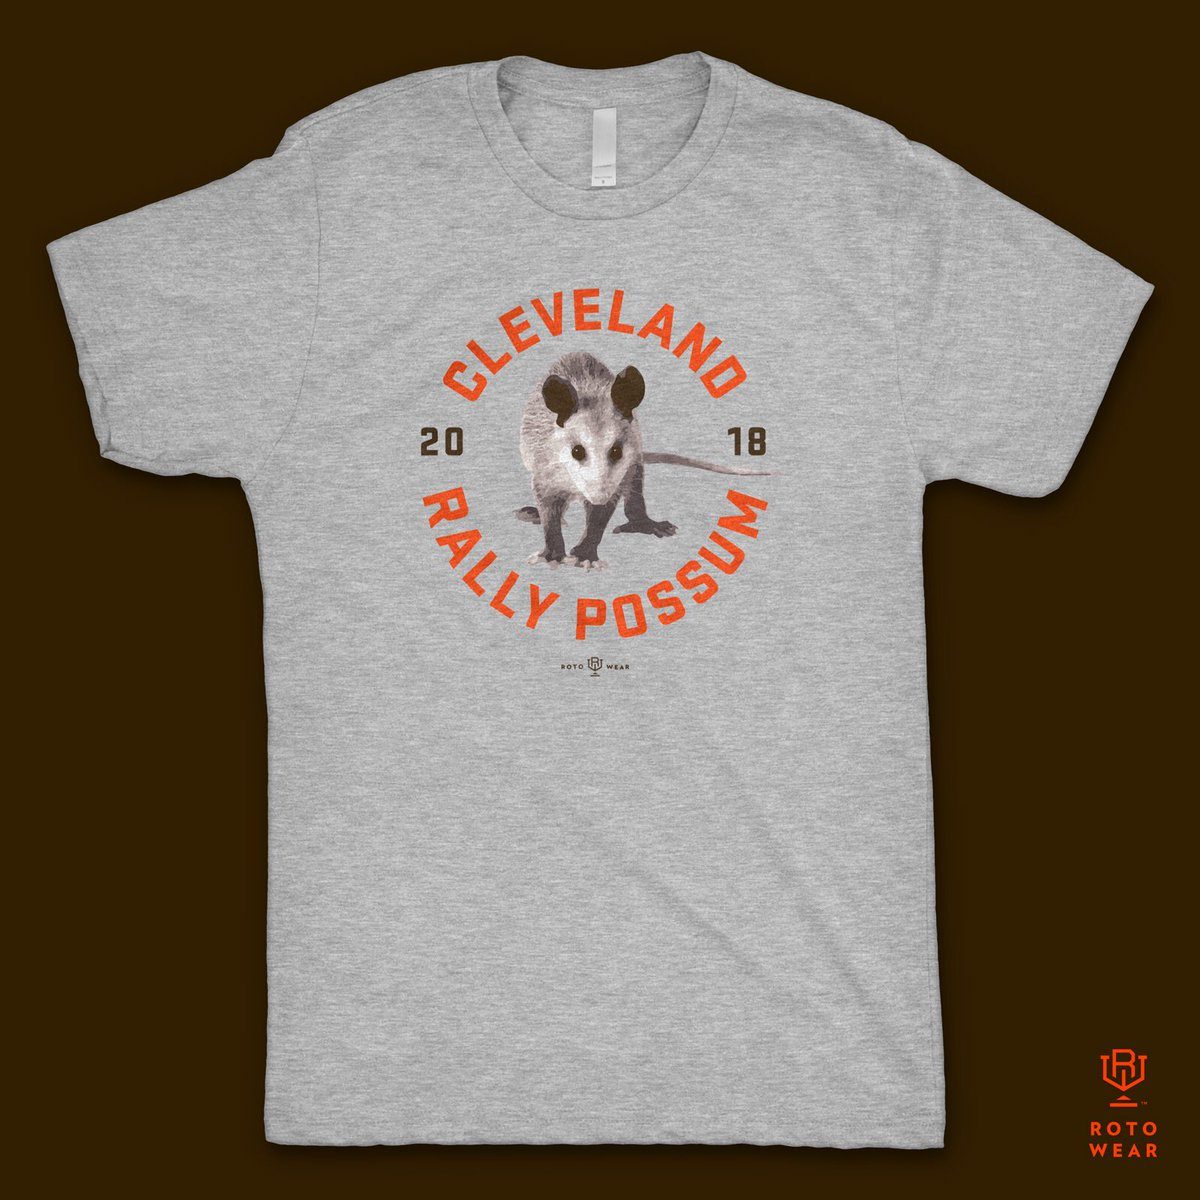 Rotowear On Twitter Cleveland Rally Possum Browns Available Only At Https T Co Kqgowrmmrk